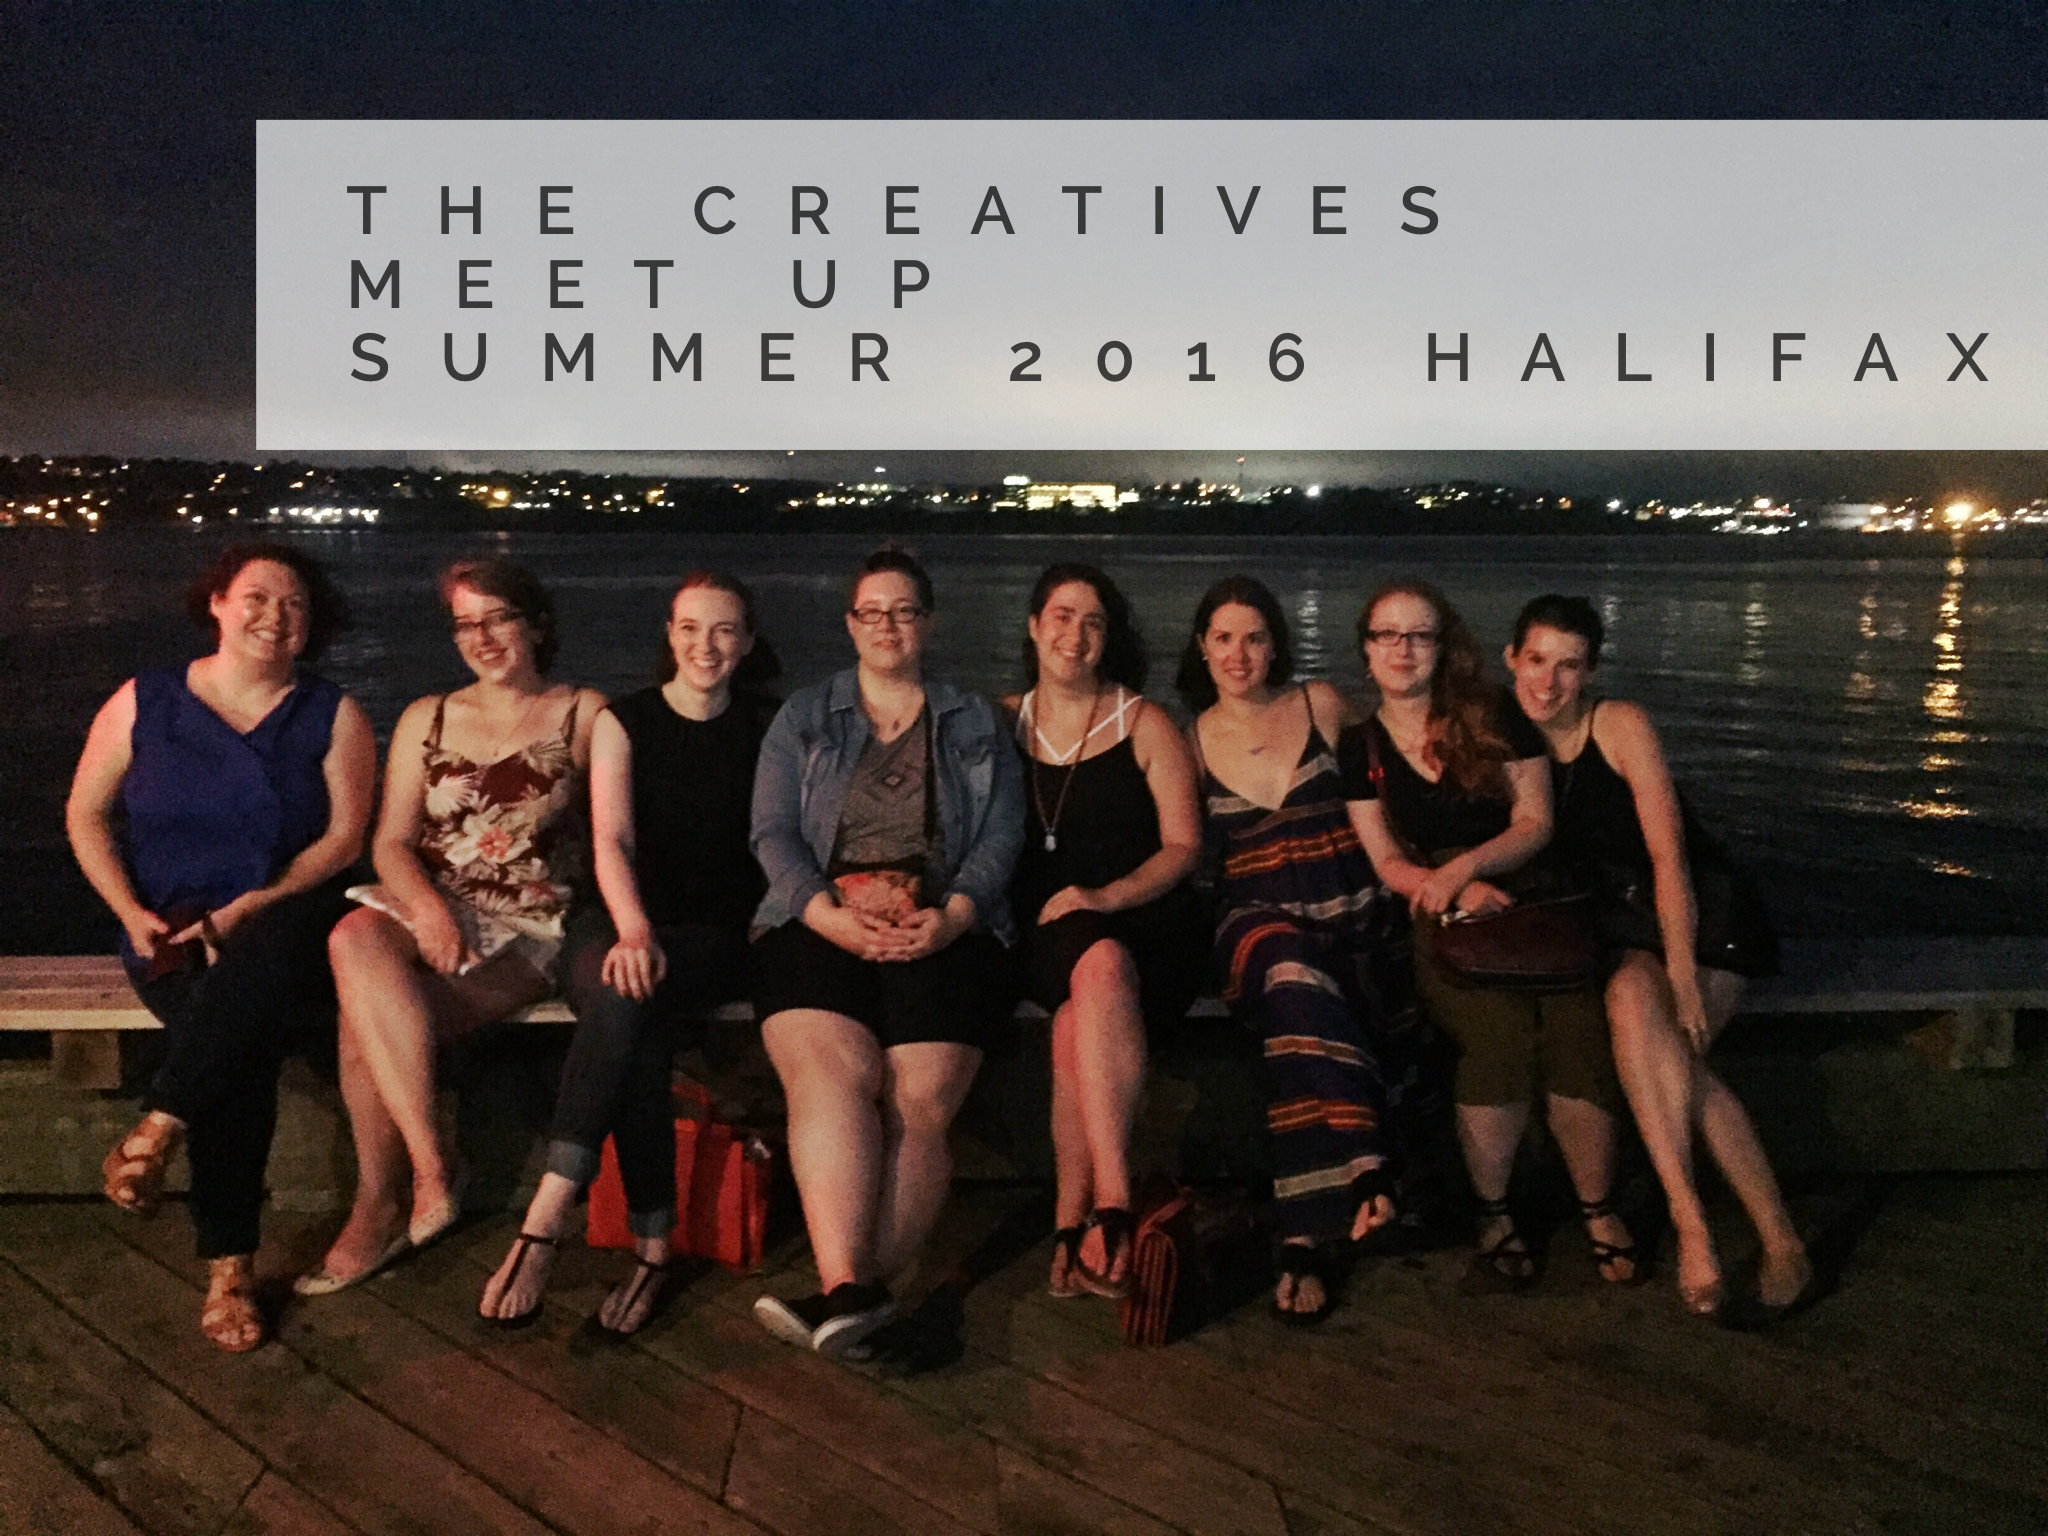 thecreatives.meetup.summer16